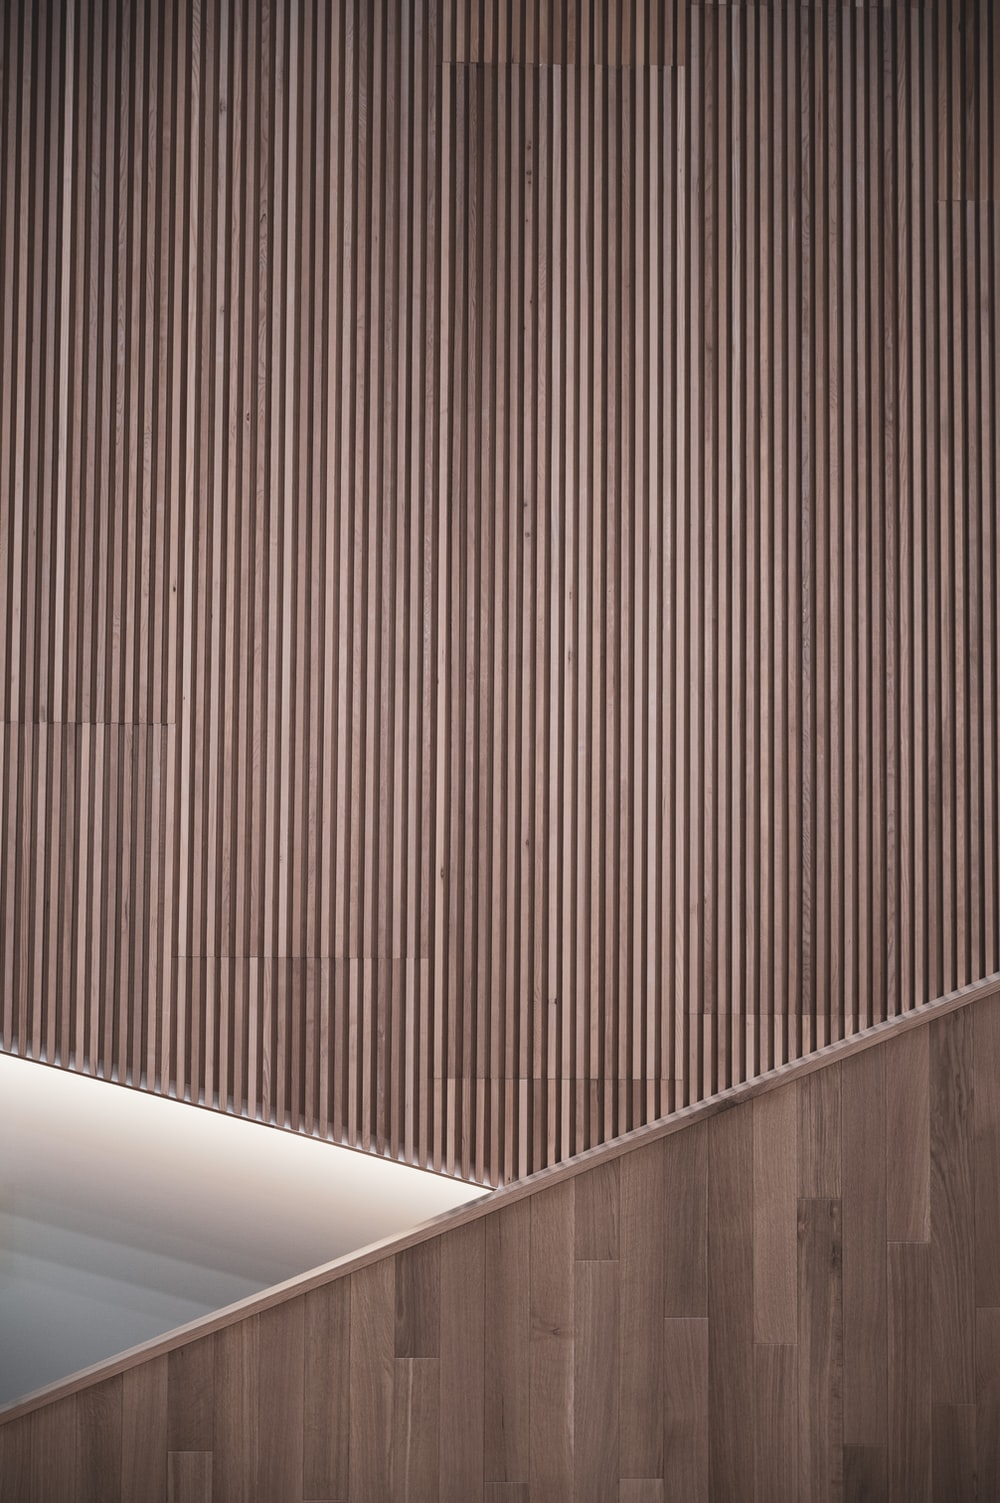 brown wooden wall with white wooden door